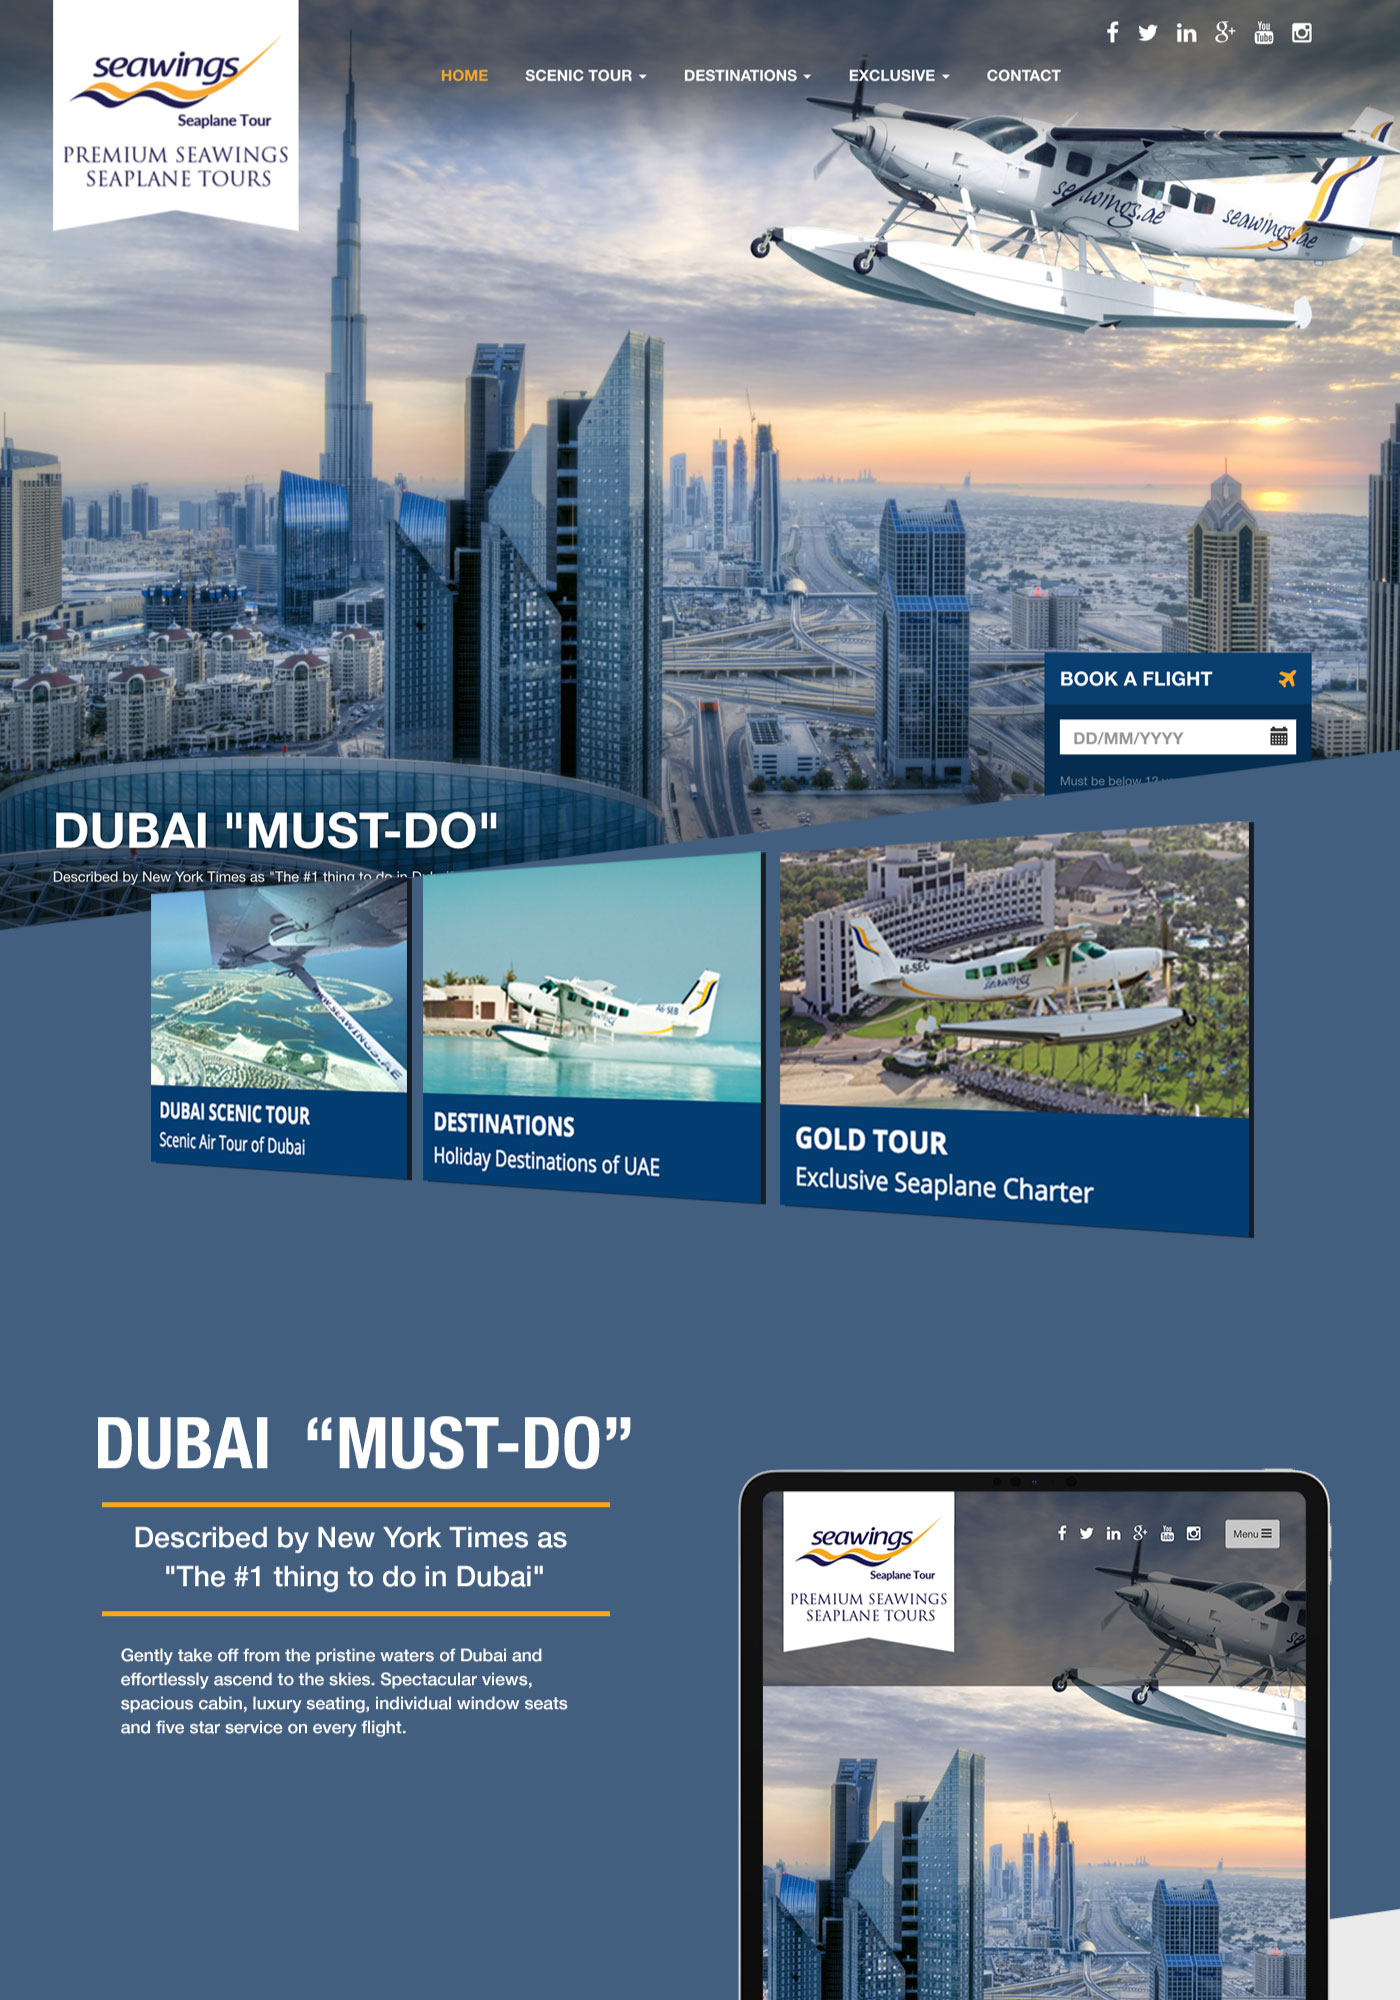 Seawings Seaplane Tours website showing top overview of Dubai tours